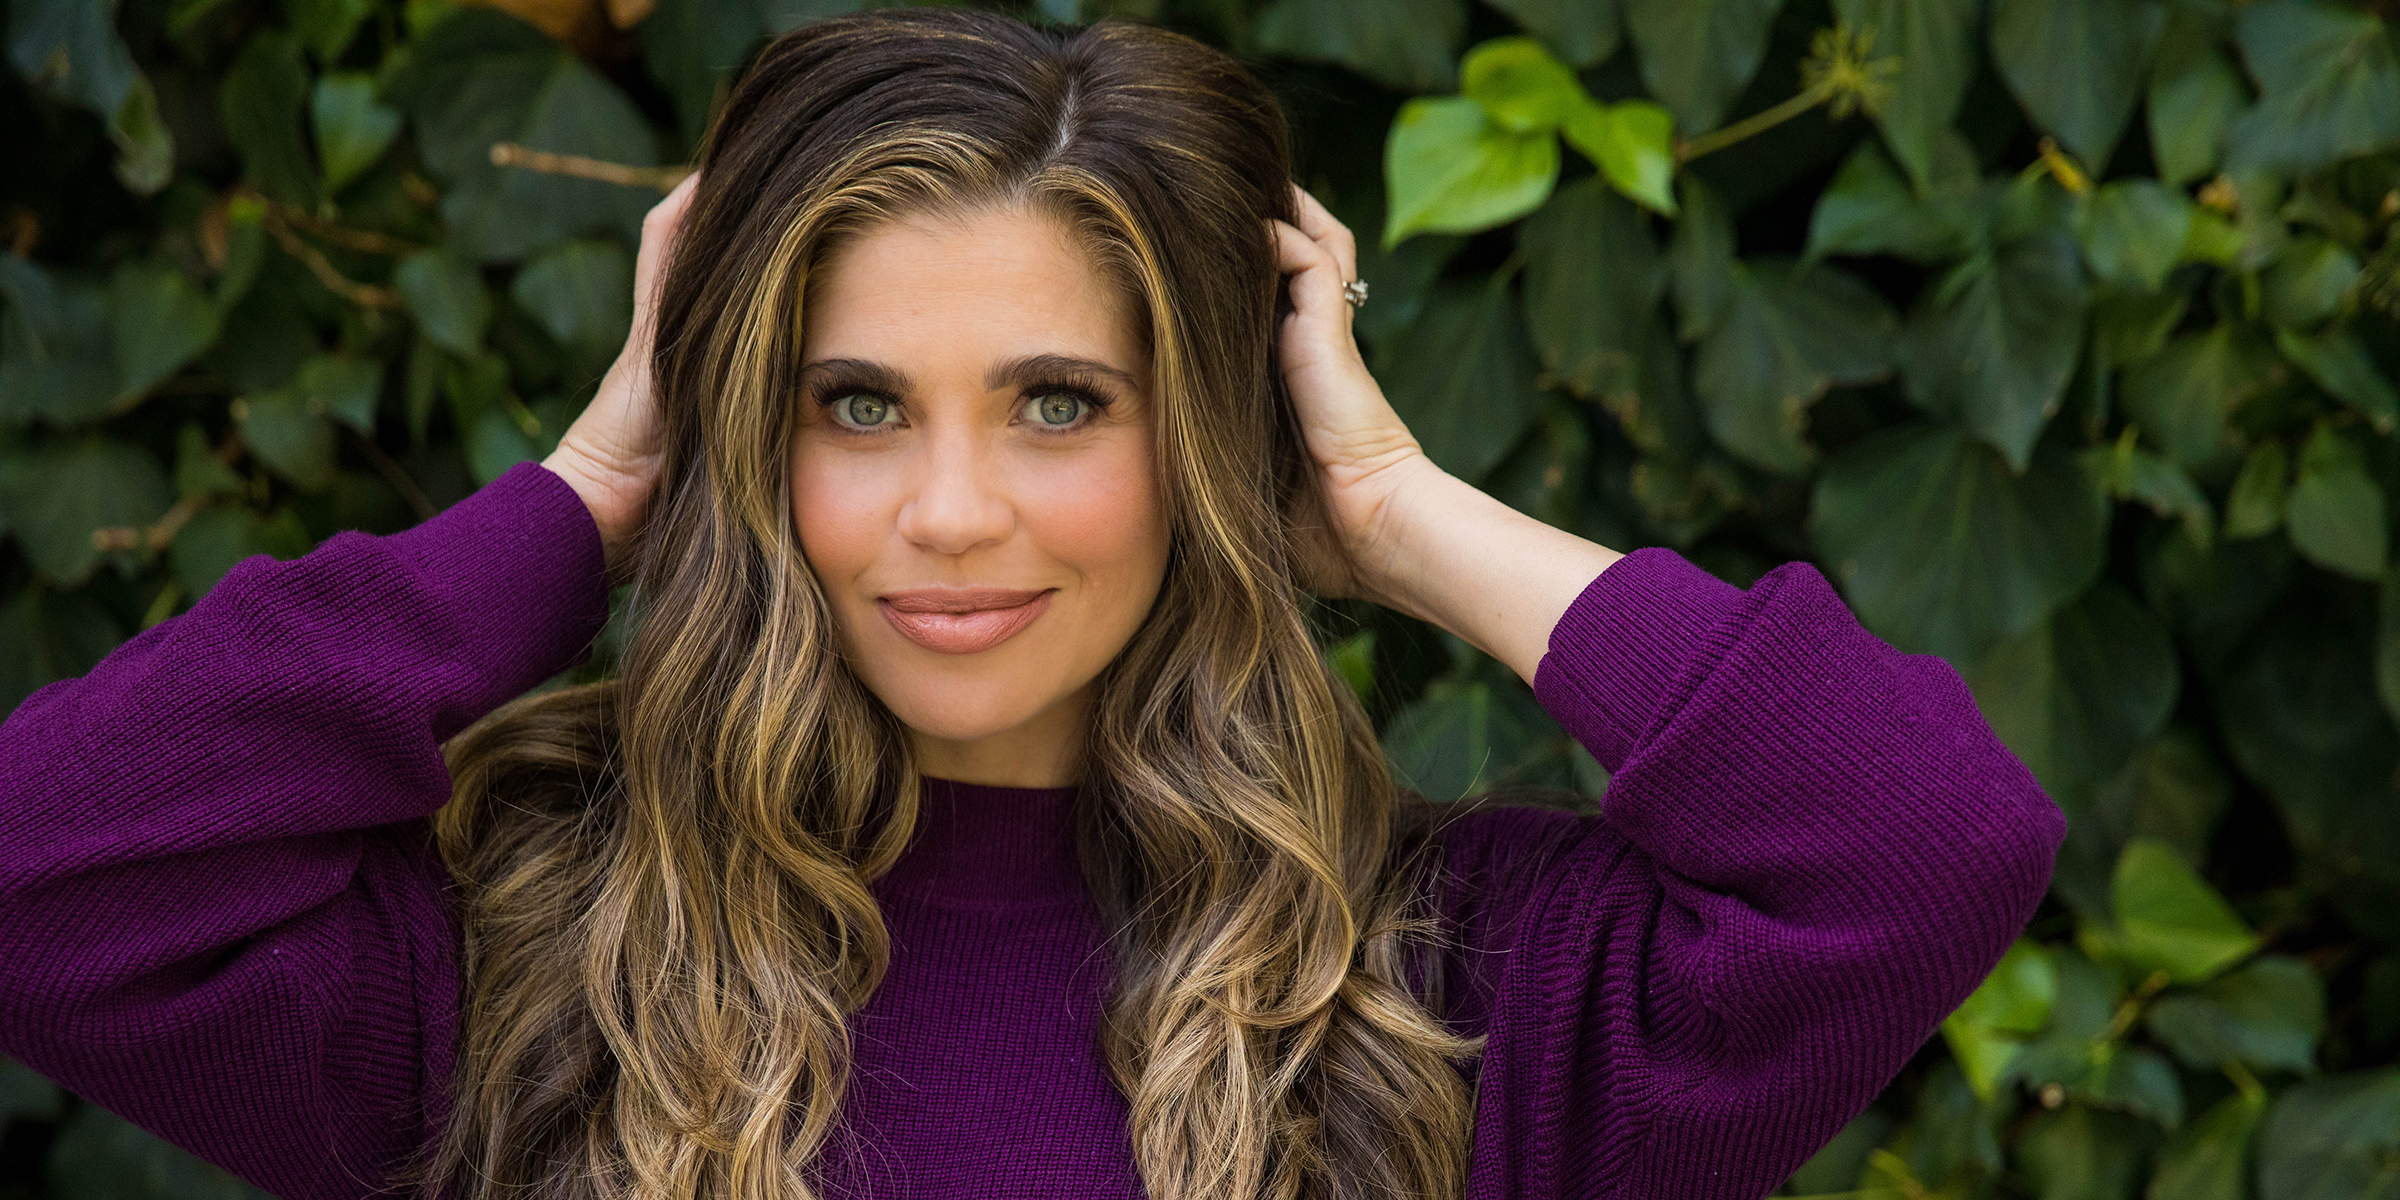 Danielle Fishel releases a hair care line so we can all have Topanga hair